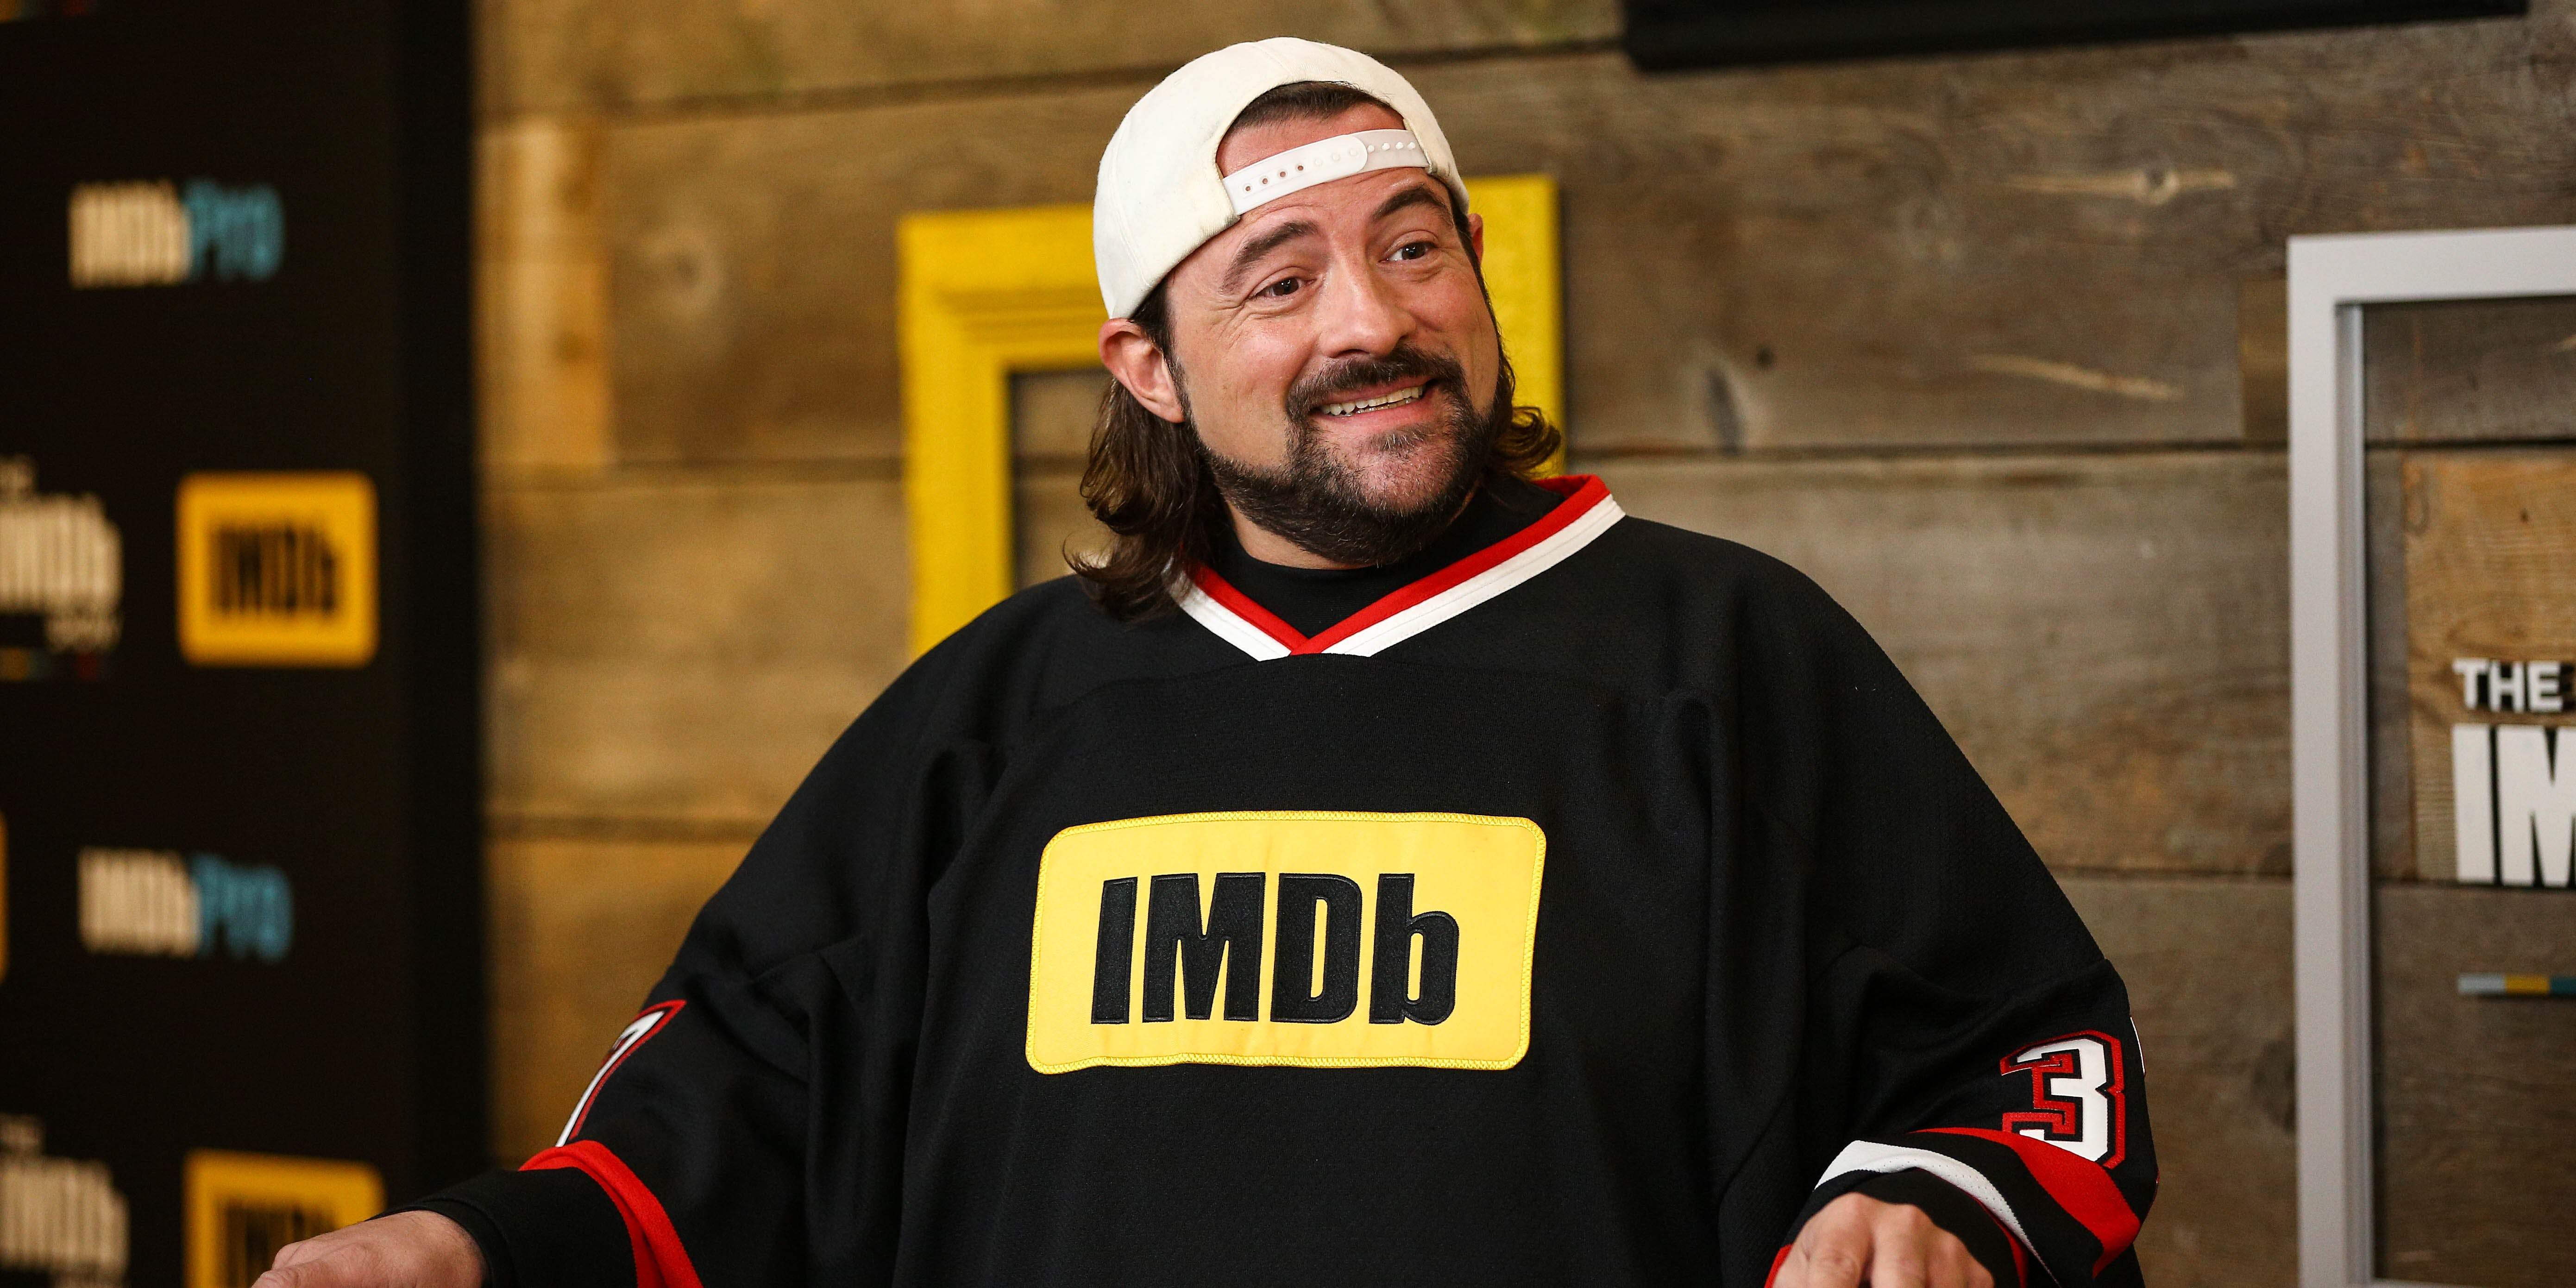 Kevin Smith wears an IMDb shirt during an interview. He is crowdfunding for his next comedy series 'Hollyweed'